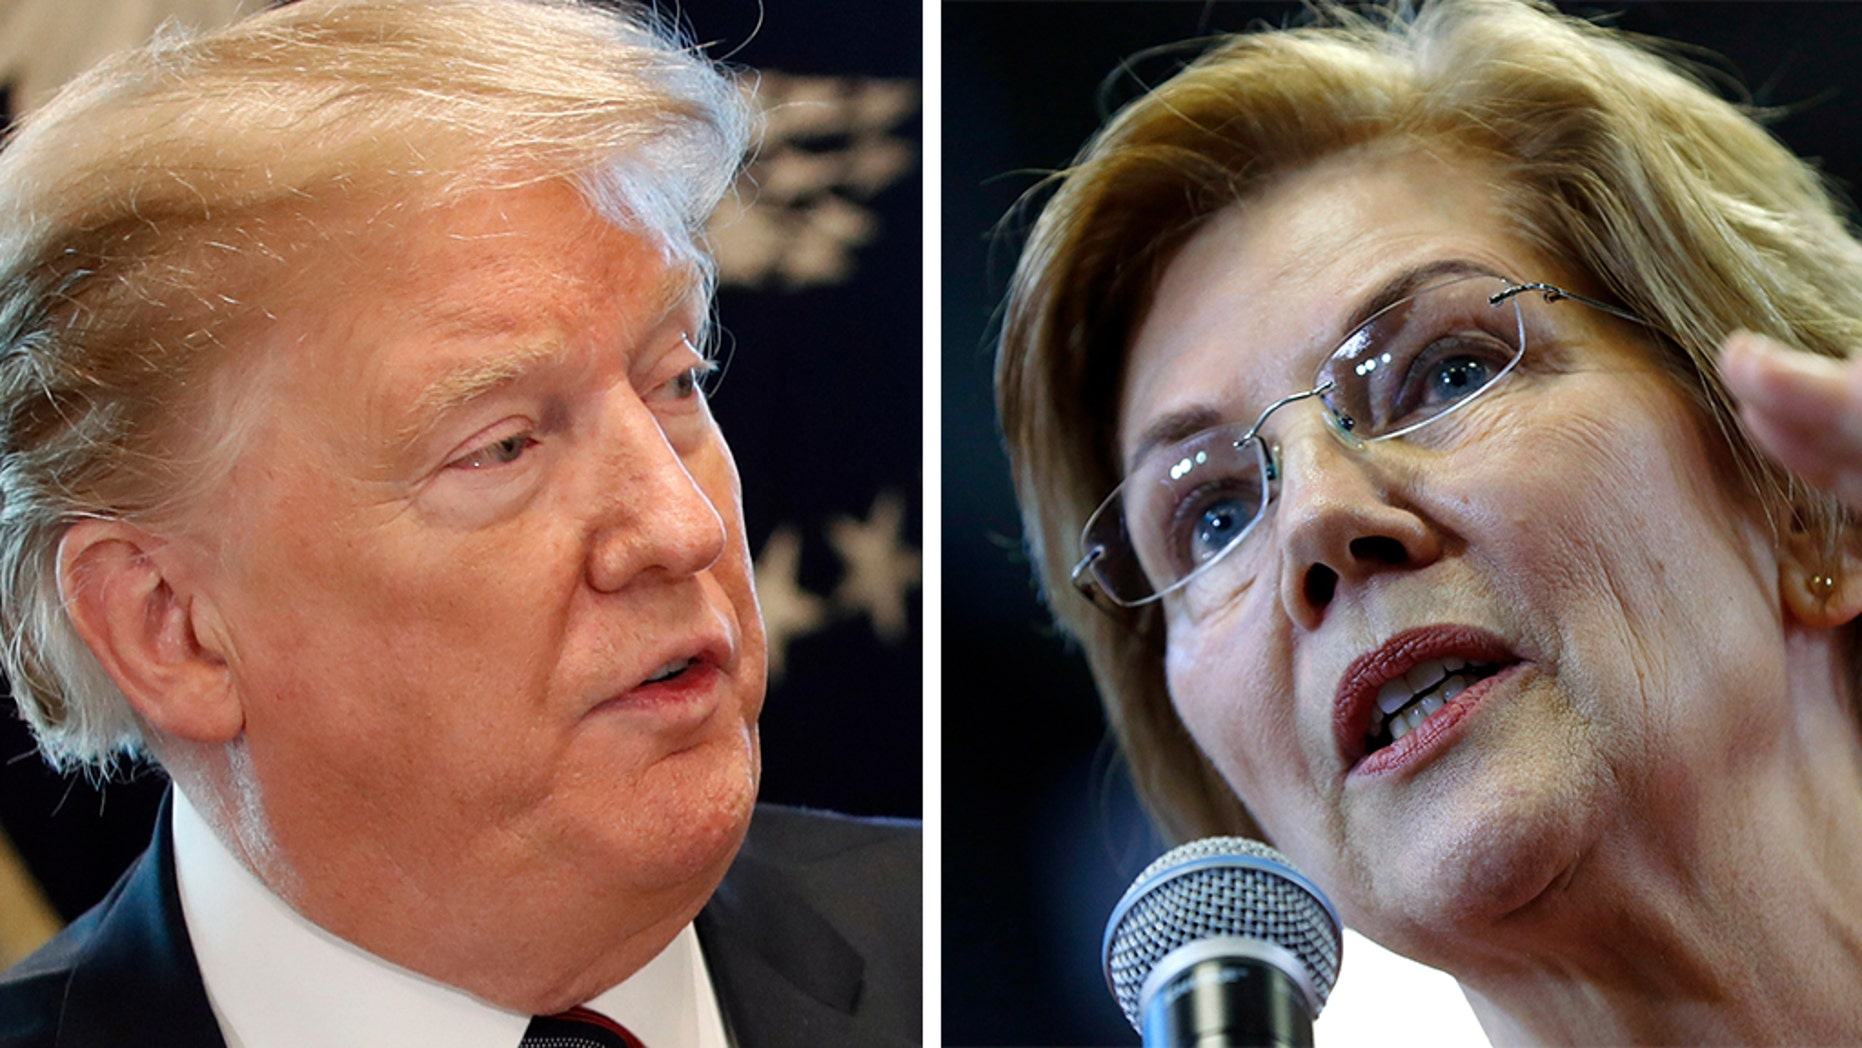 Trump Rips Warren Over 'Beer Catastrophe' Video, References Wounded Knee, Little Bighorn